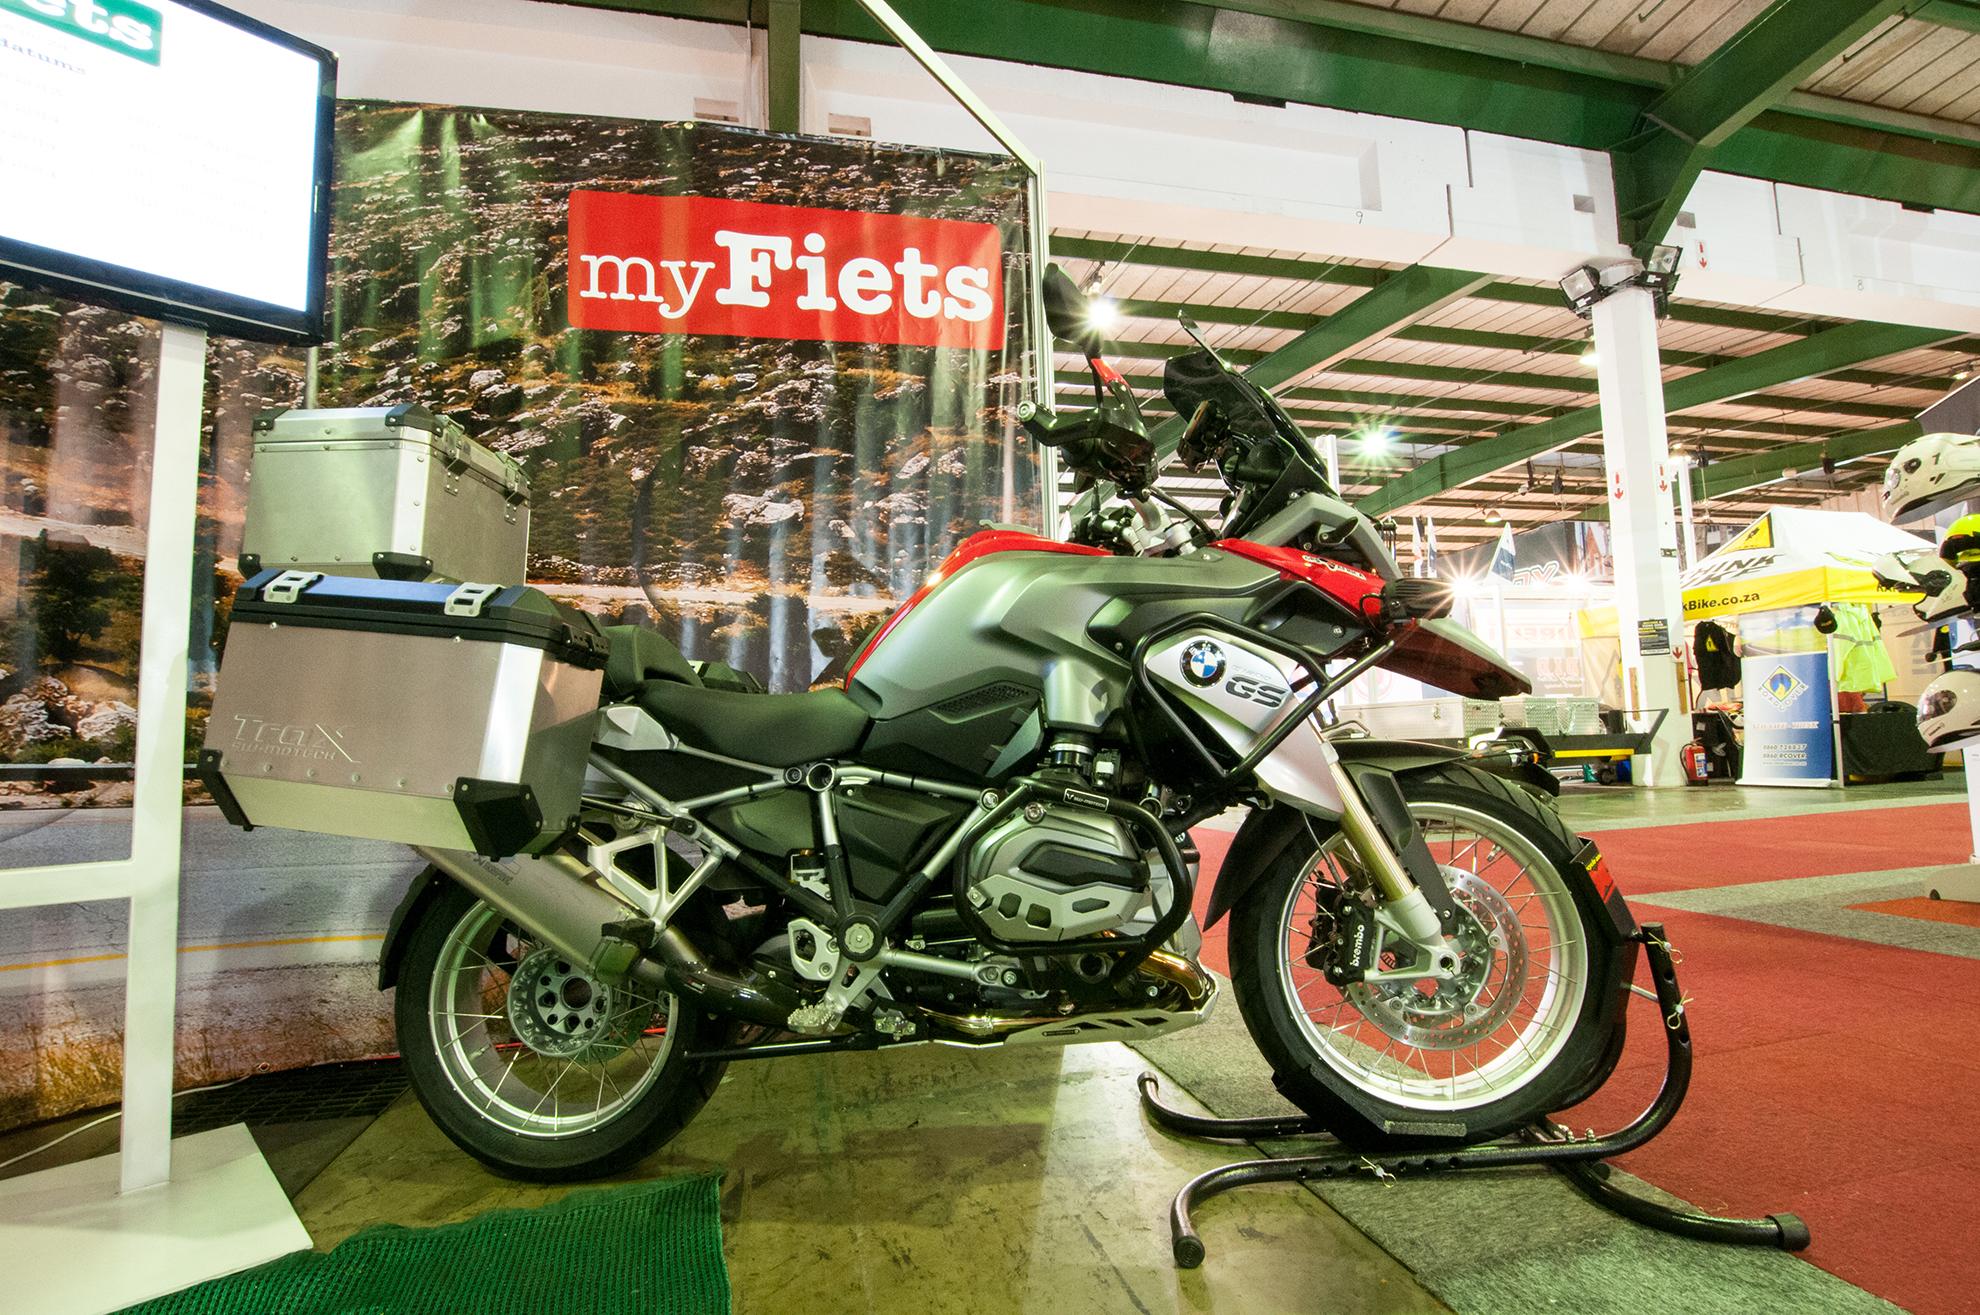 My Fiets - Amid Motorcycle Show